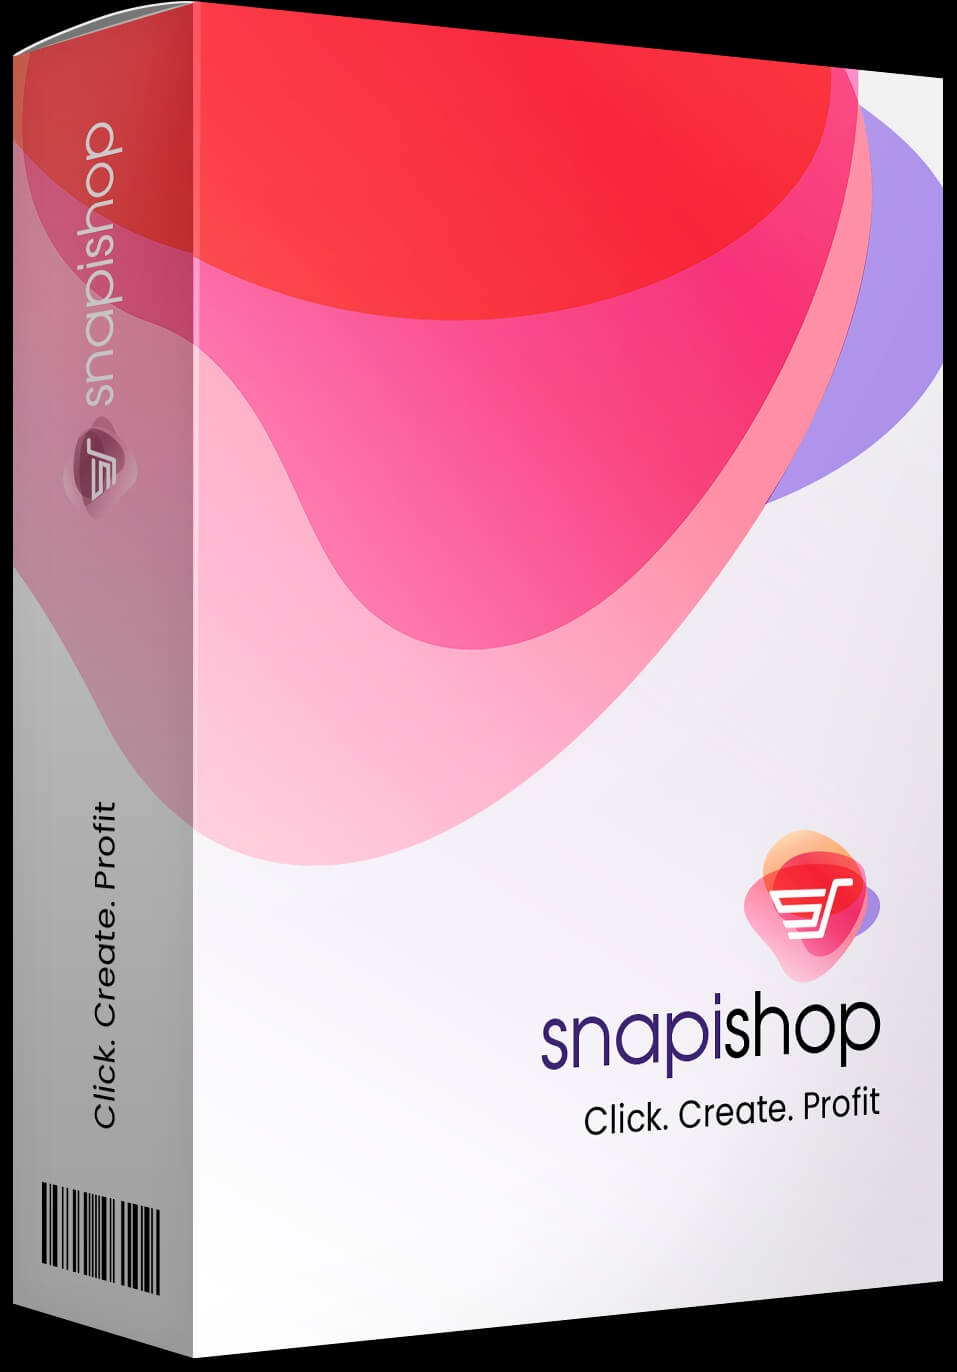 snapishop product cover